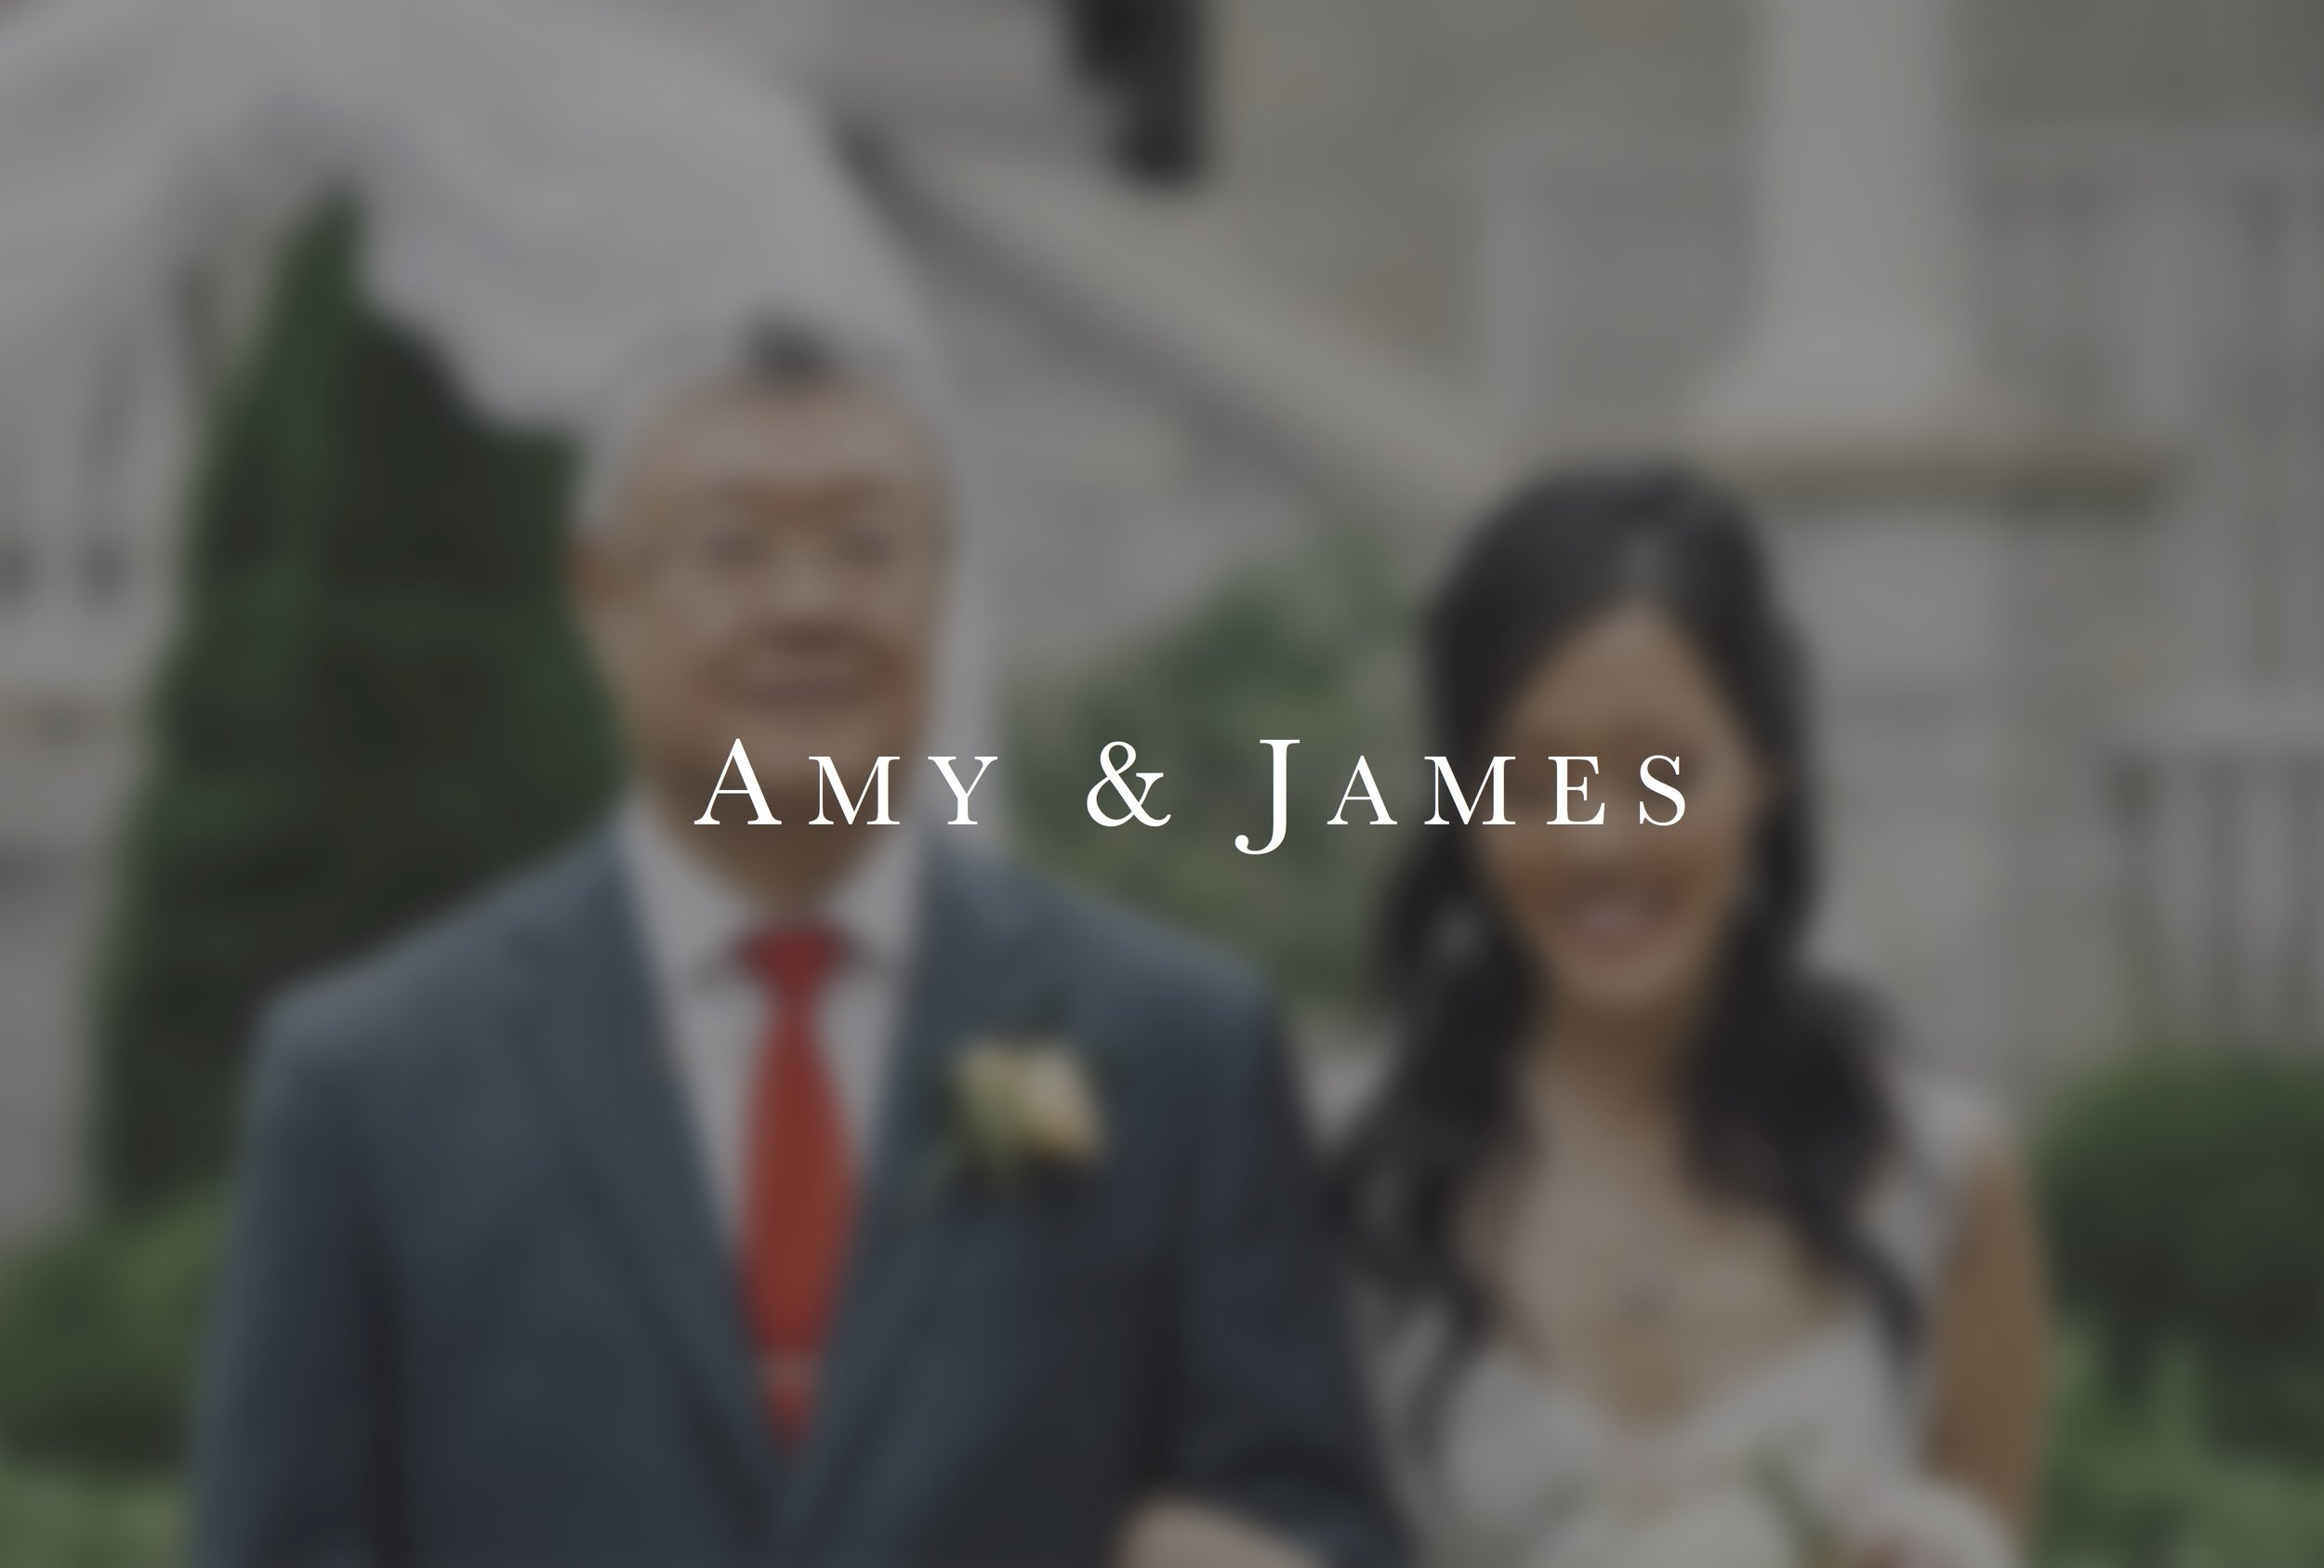 Amy & James Title.jpg